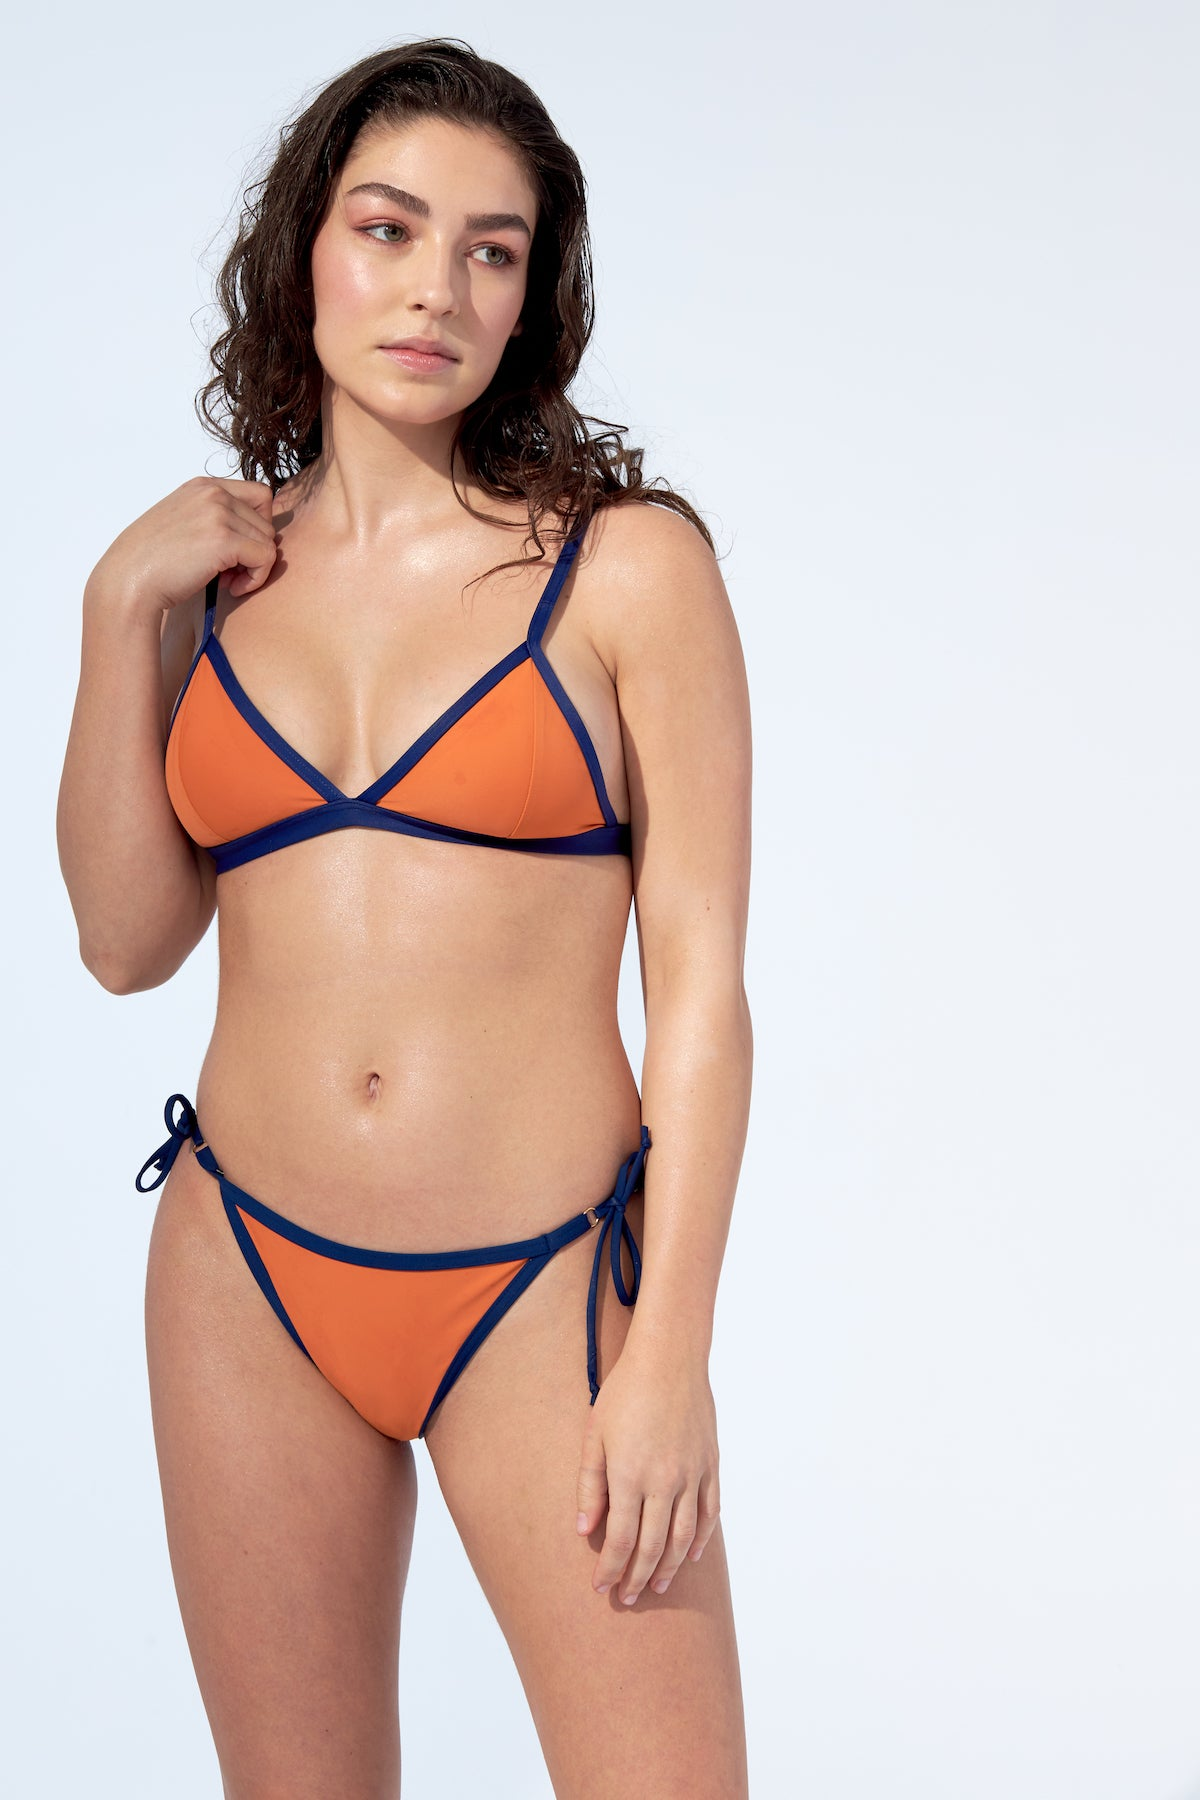 REBECCA – Bikini bottom in orange